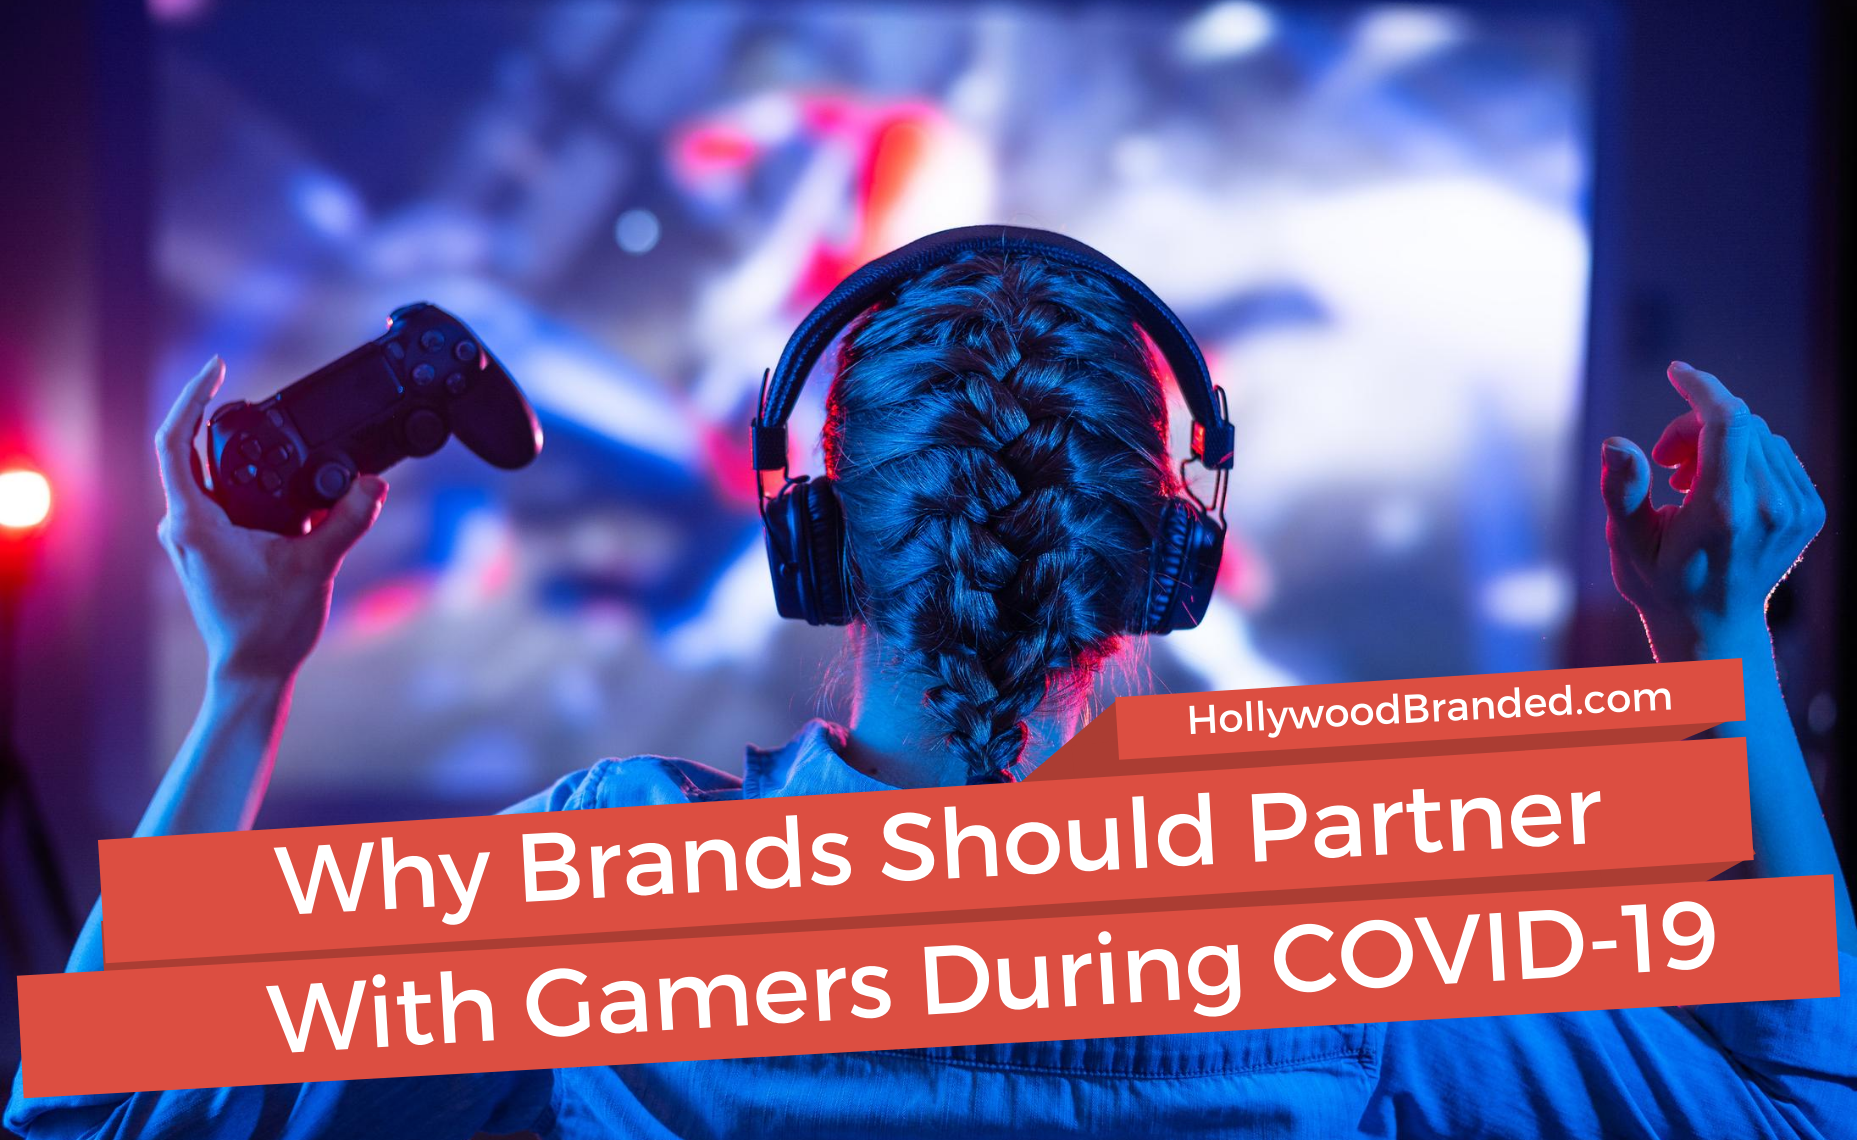 Why Brands Should Partner With Gamers in the Wake of the Pandemic